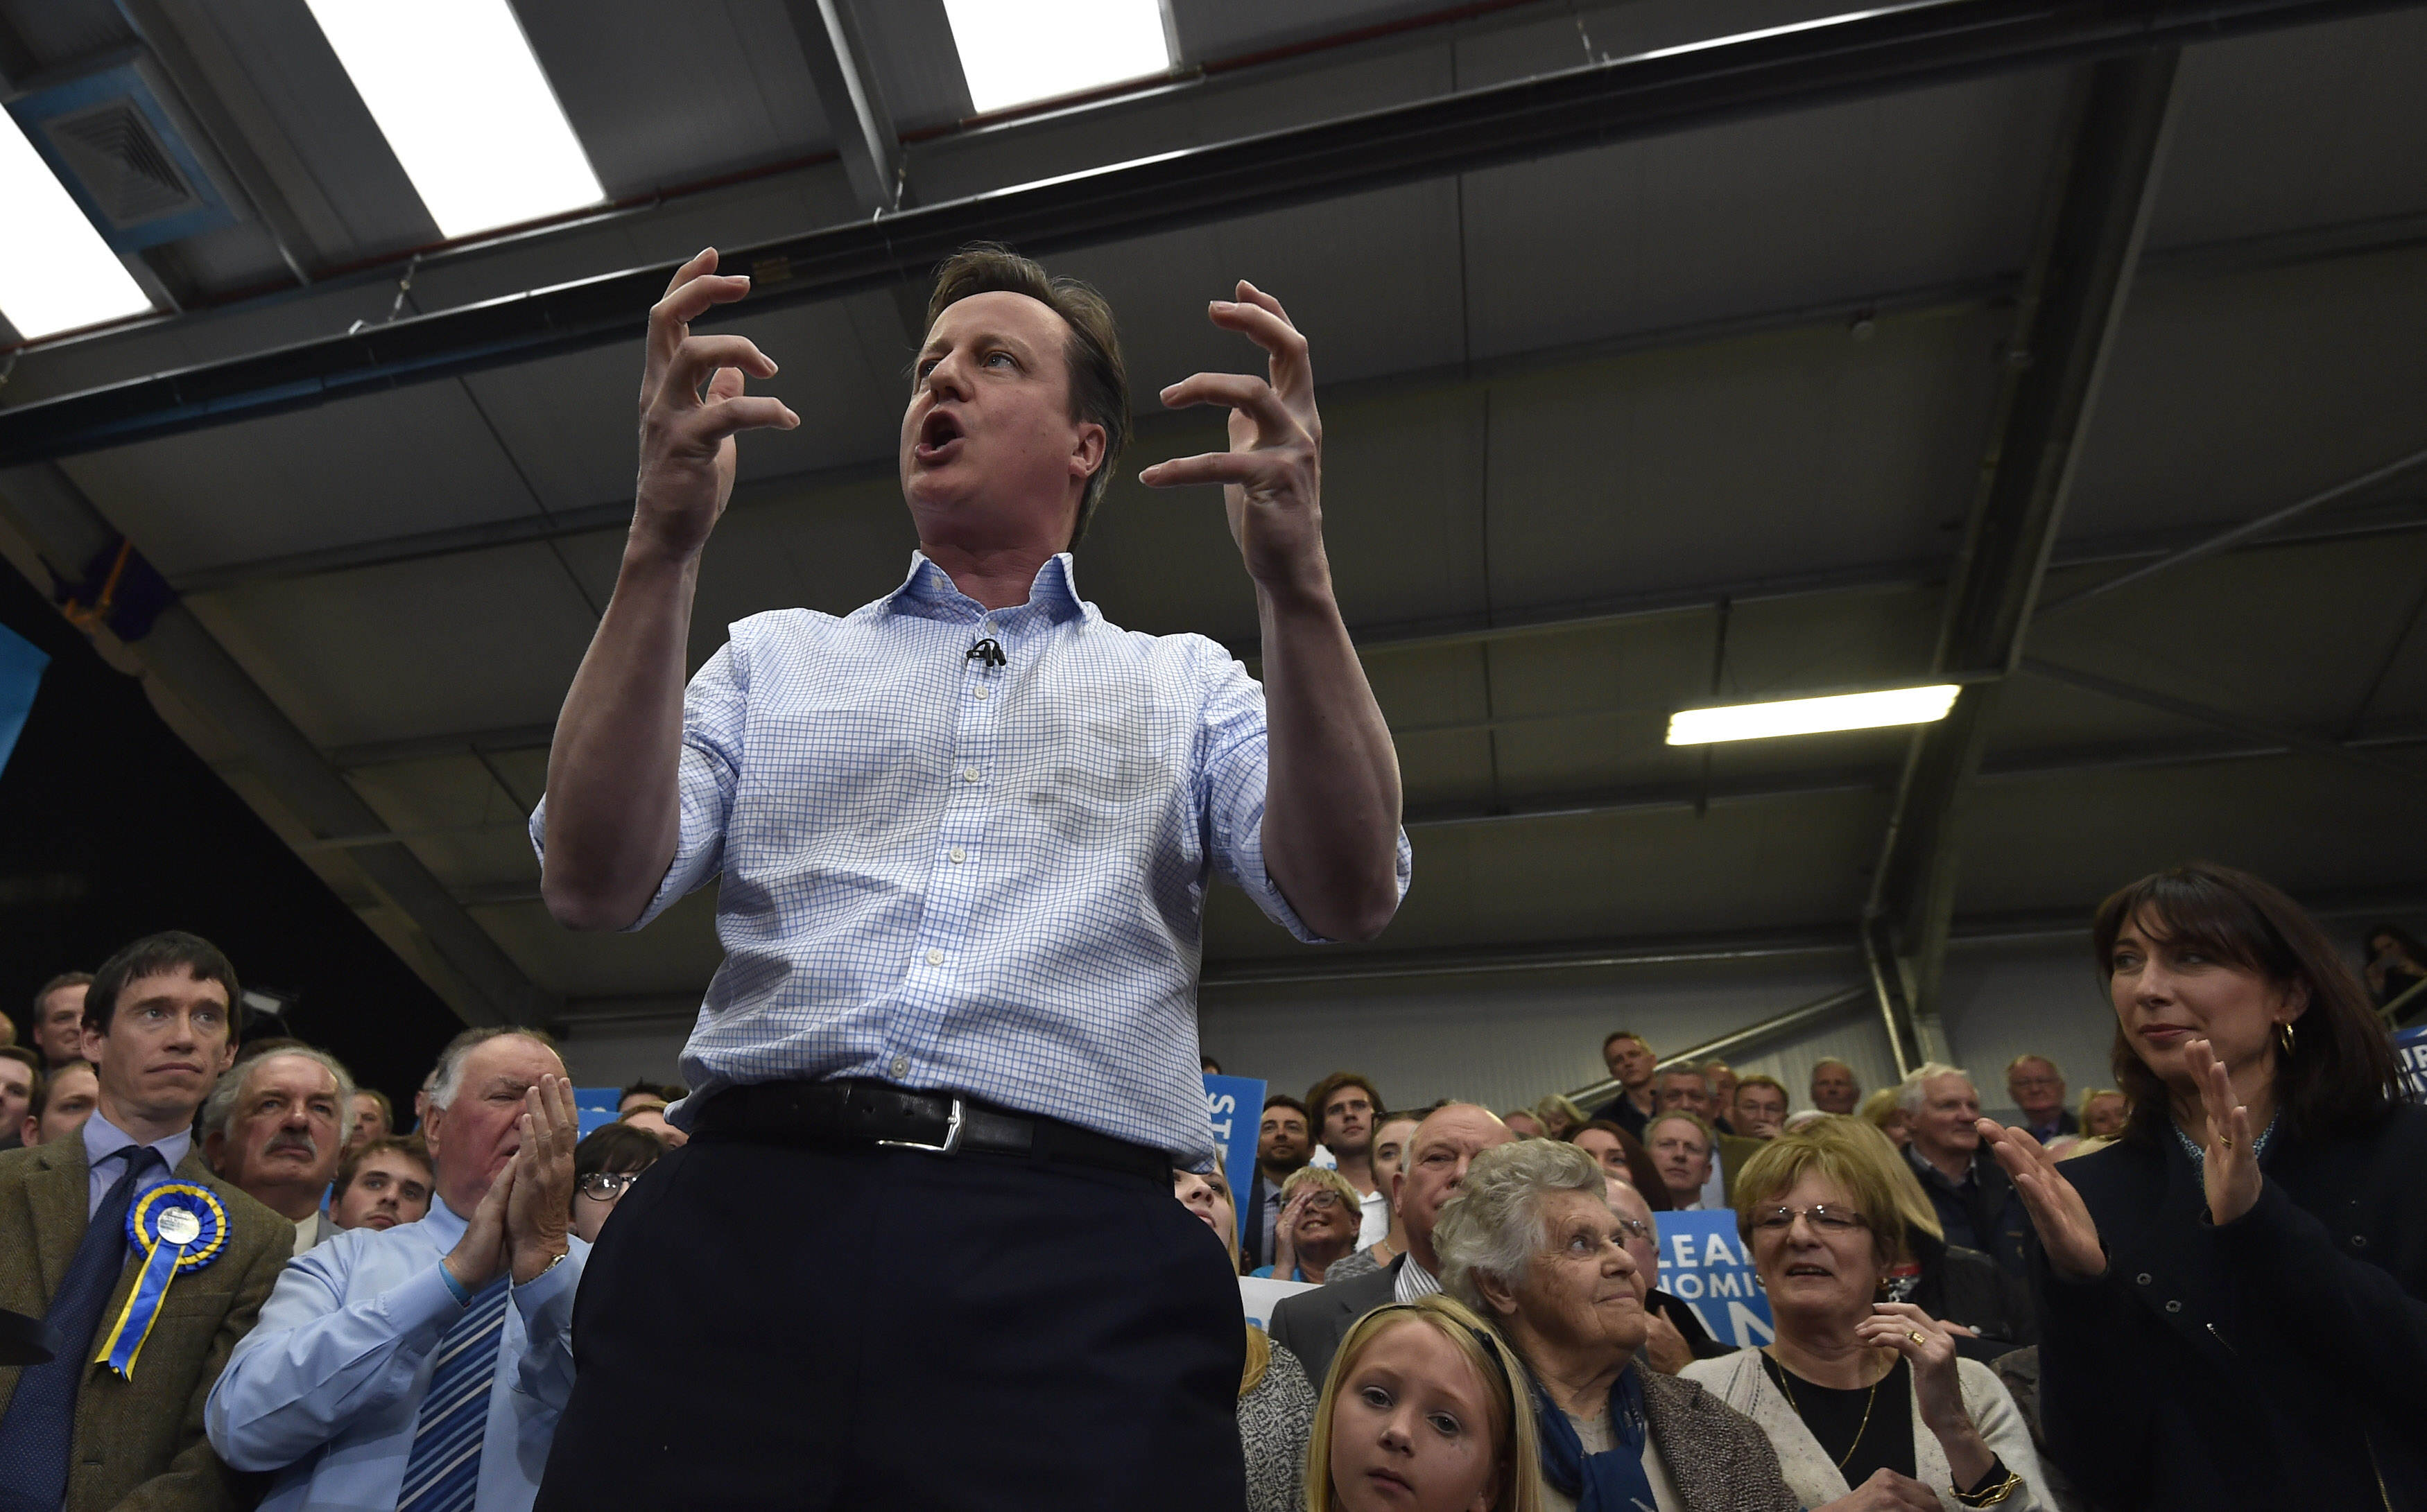 David Cameron Campaigns On Final Day Of Election